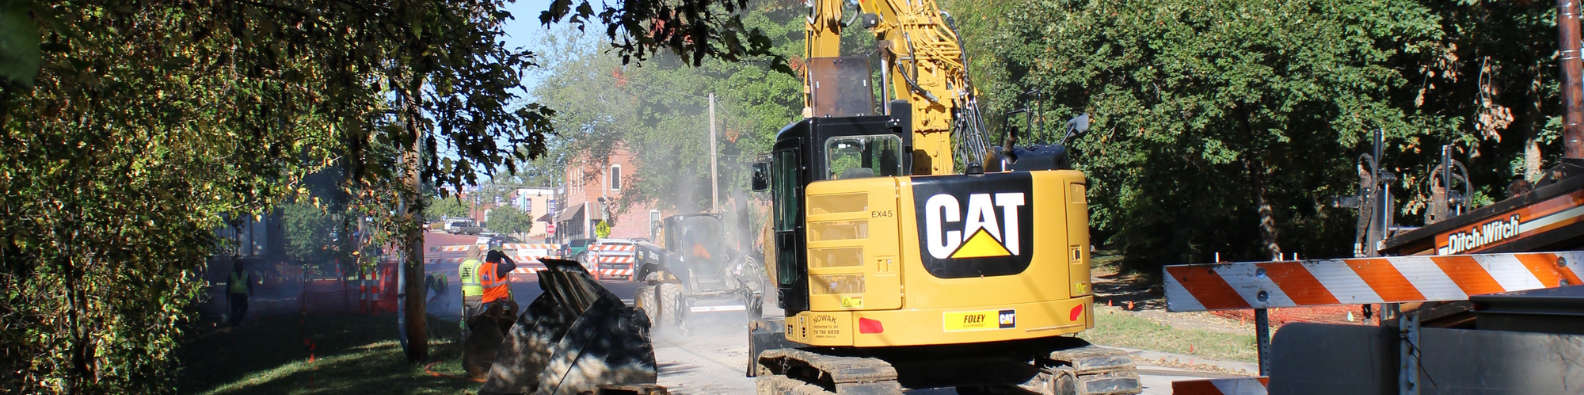 large equipment works on a sewer project on High Street